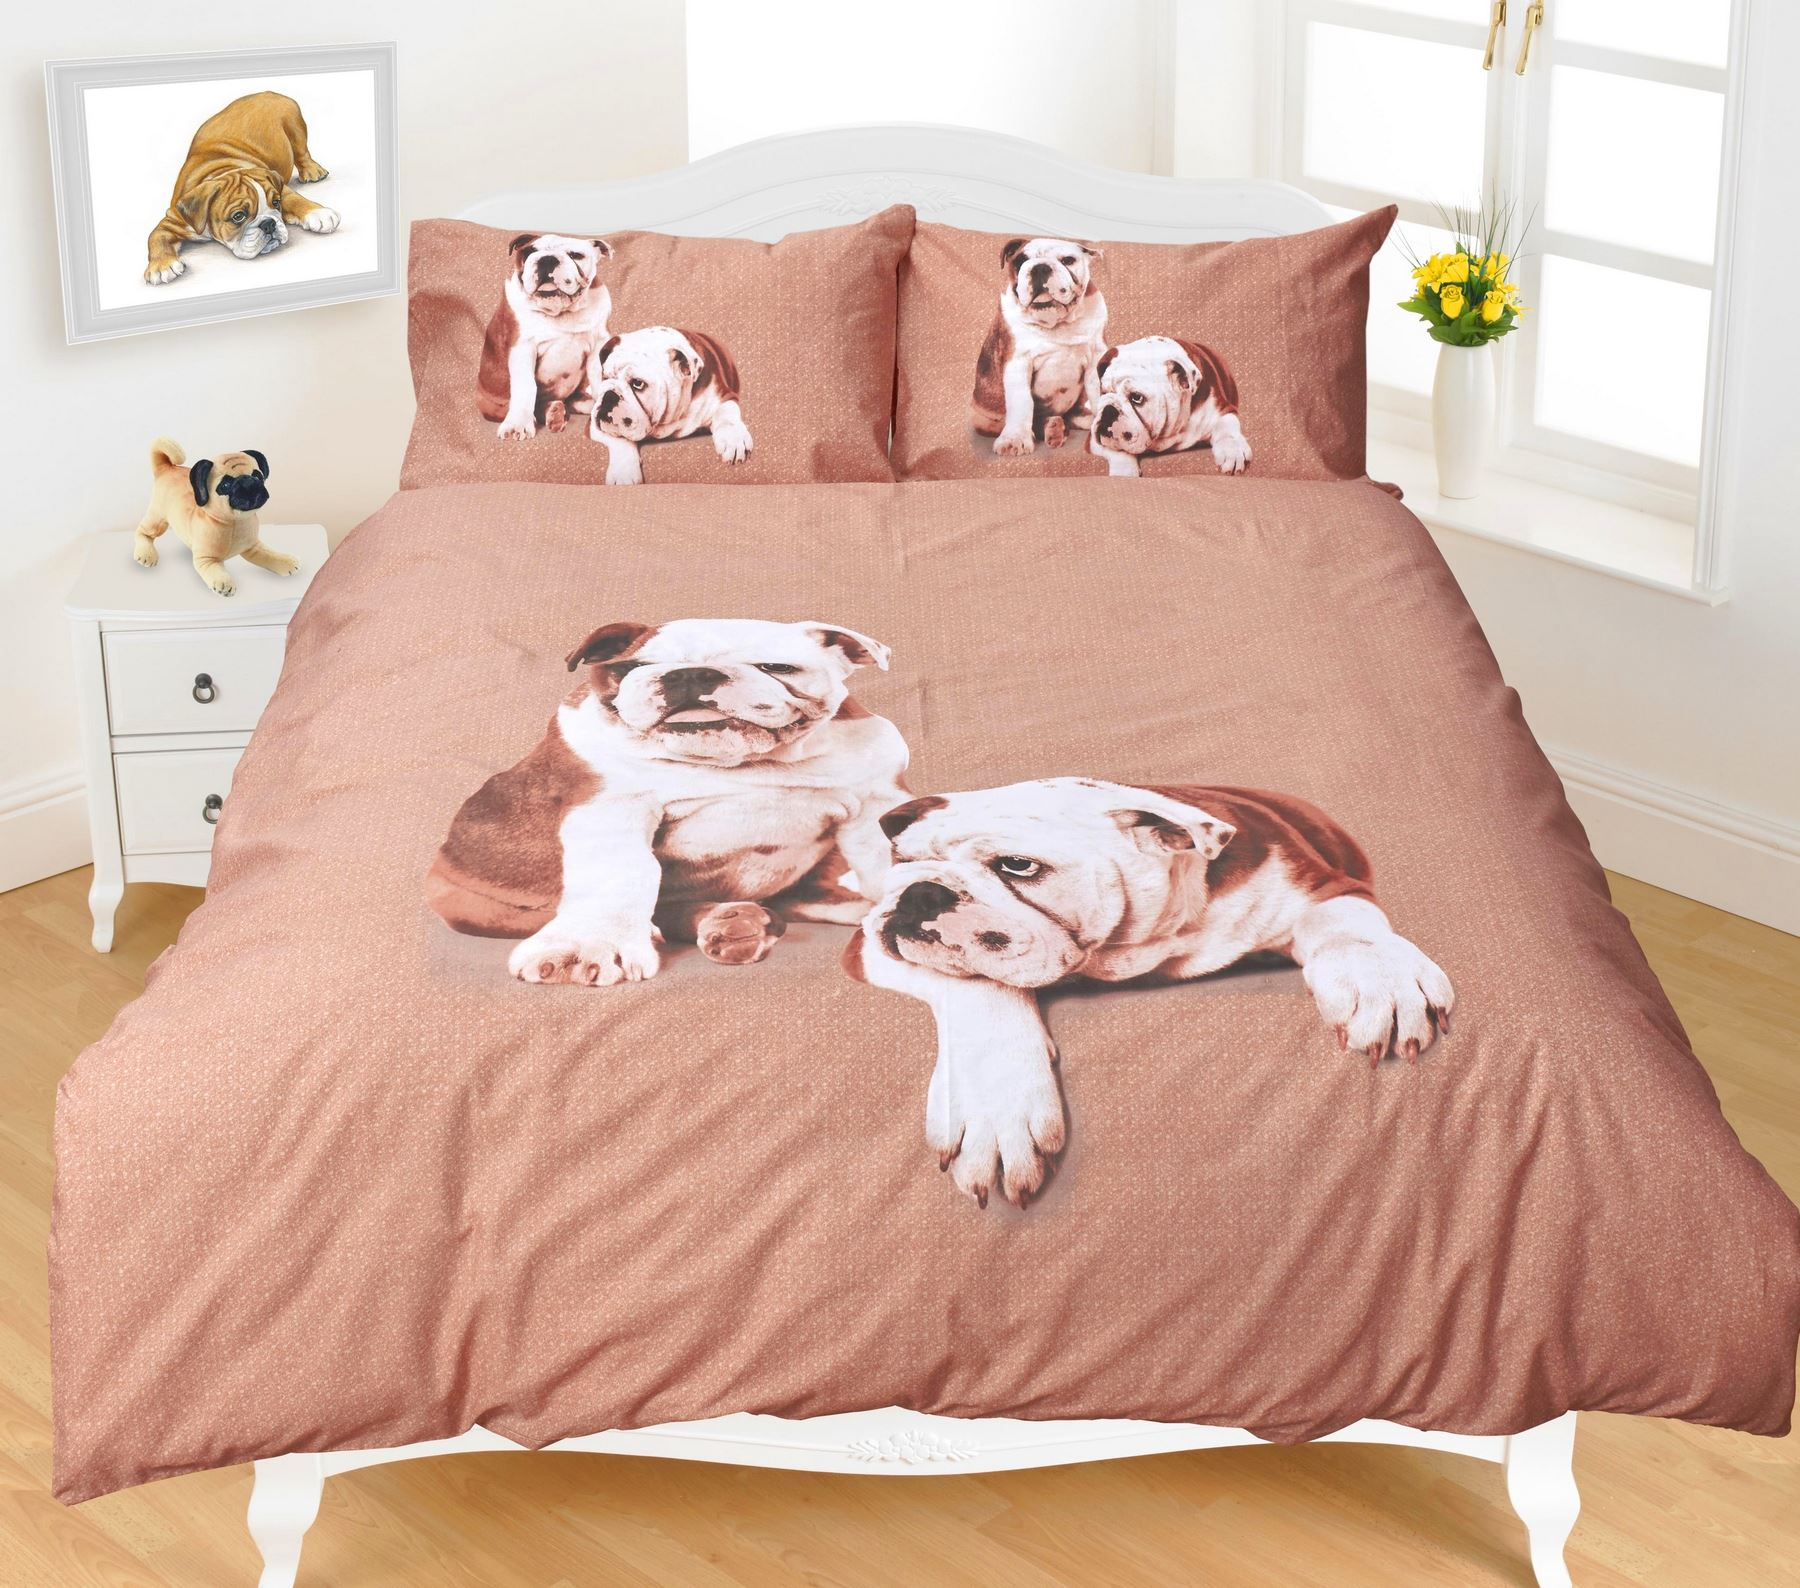 Animal Quilt Duvet Cover Amp Pillowcase Bedding Bed Set